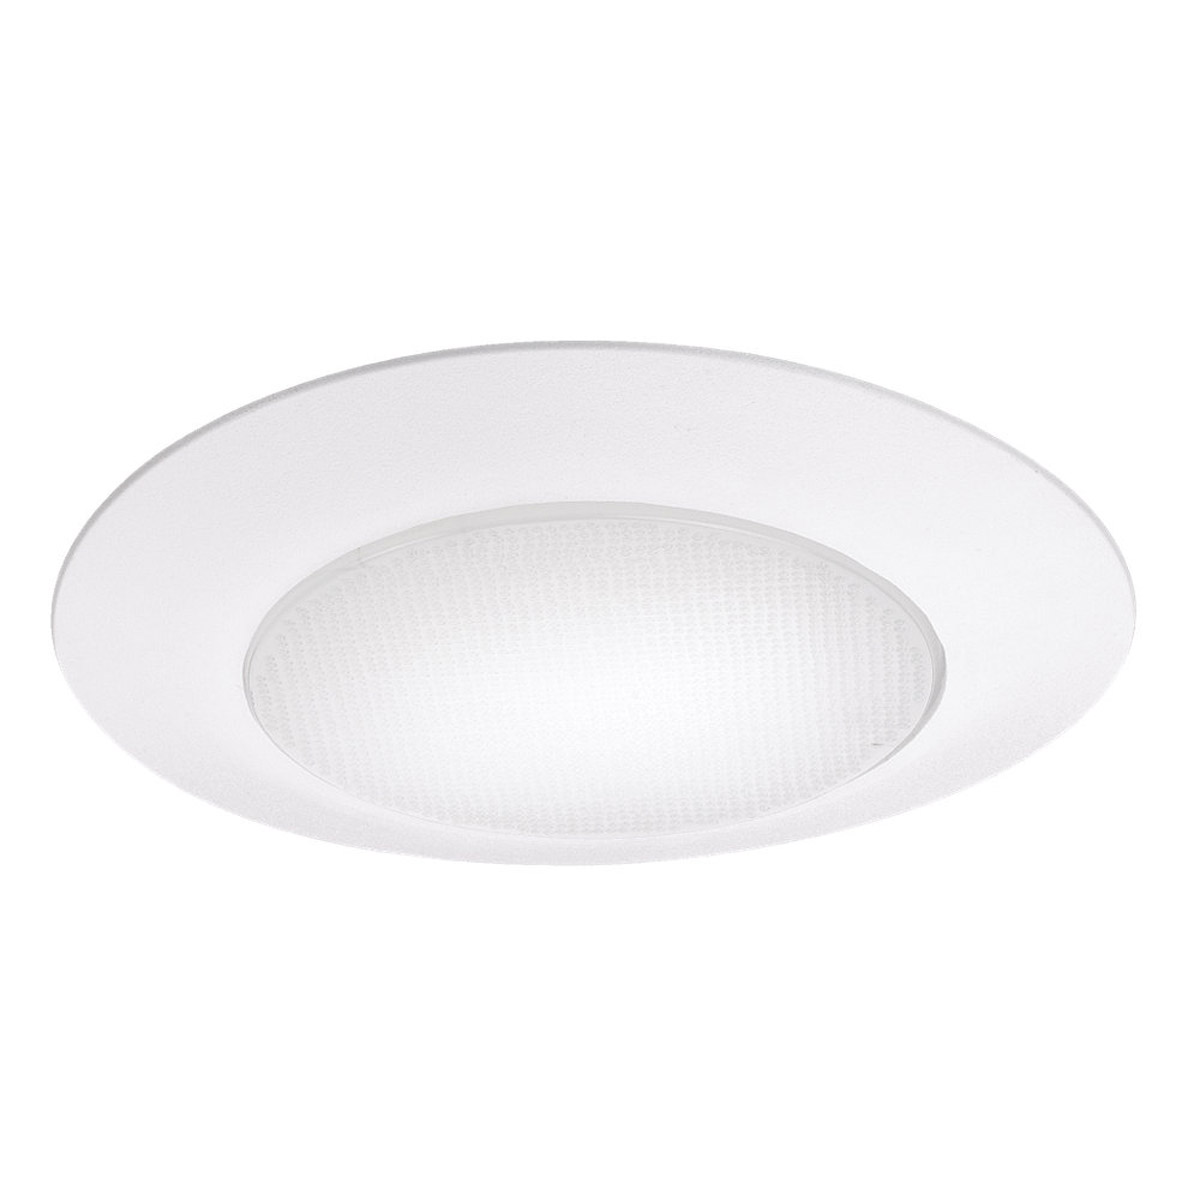 Sea Gull Lighting Signature Recessed Trim Only in White 11233AT-15